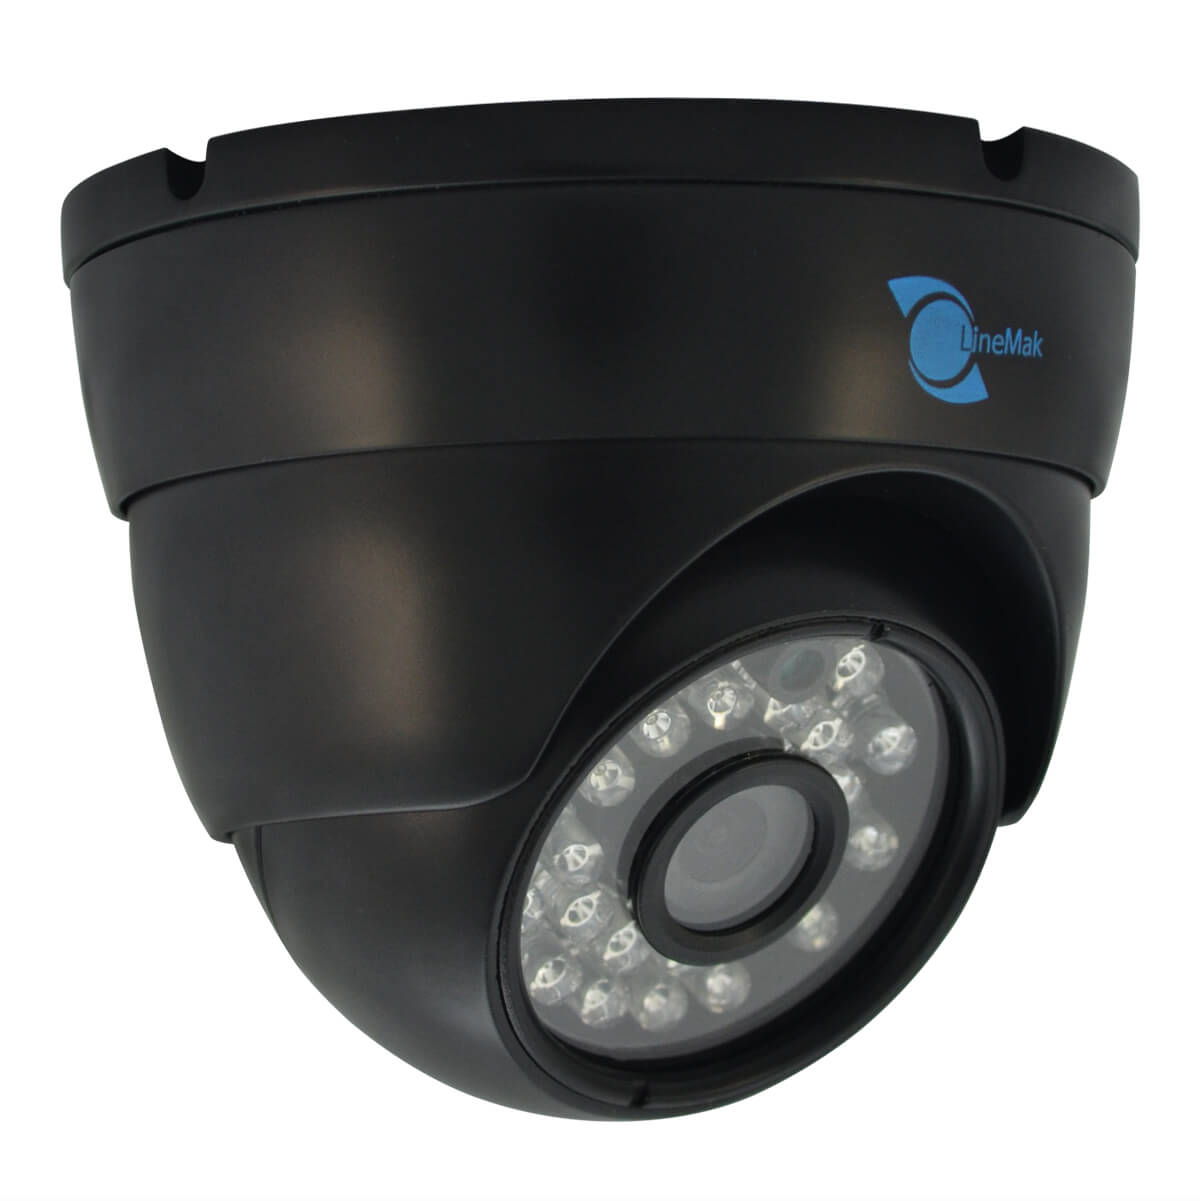 Dome camera, SONY CCD Sensor, 700TVL, 3.6mm lens, 24 LEDs, 65ft IR UTC